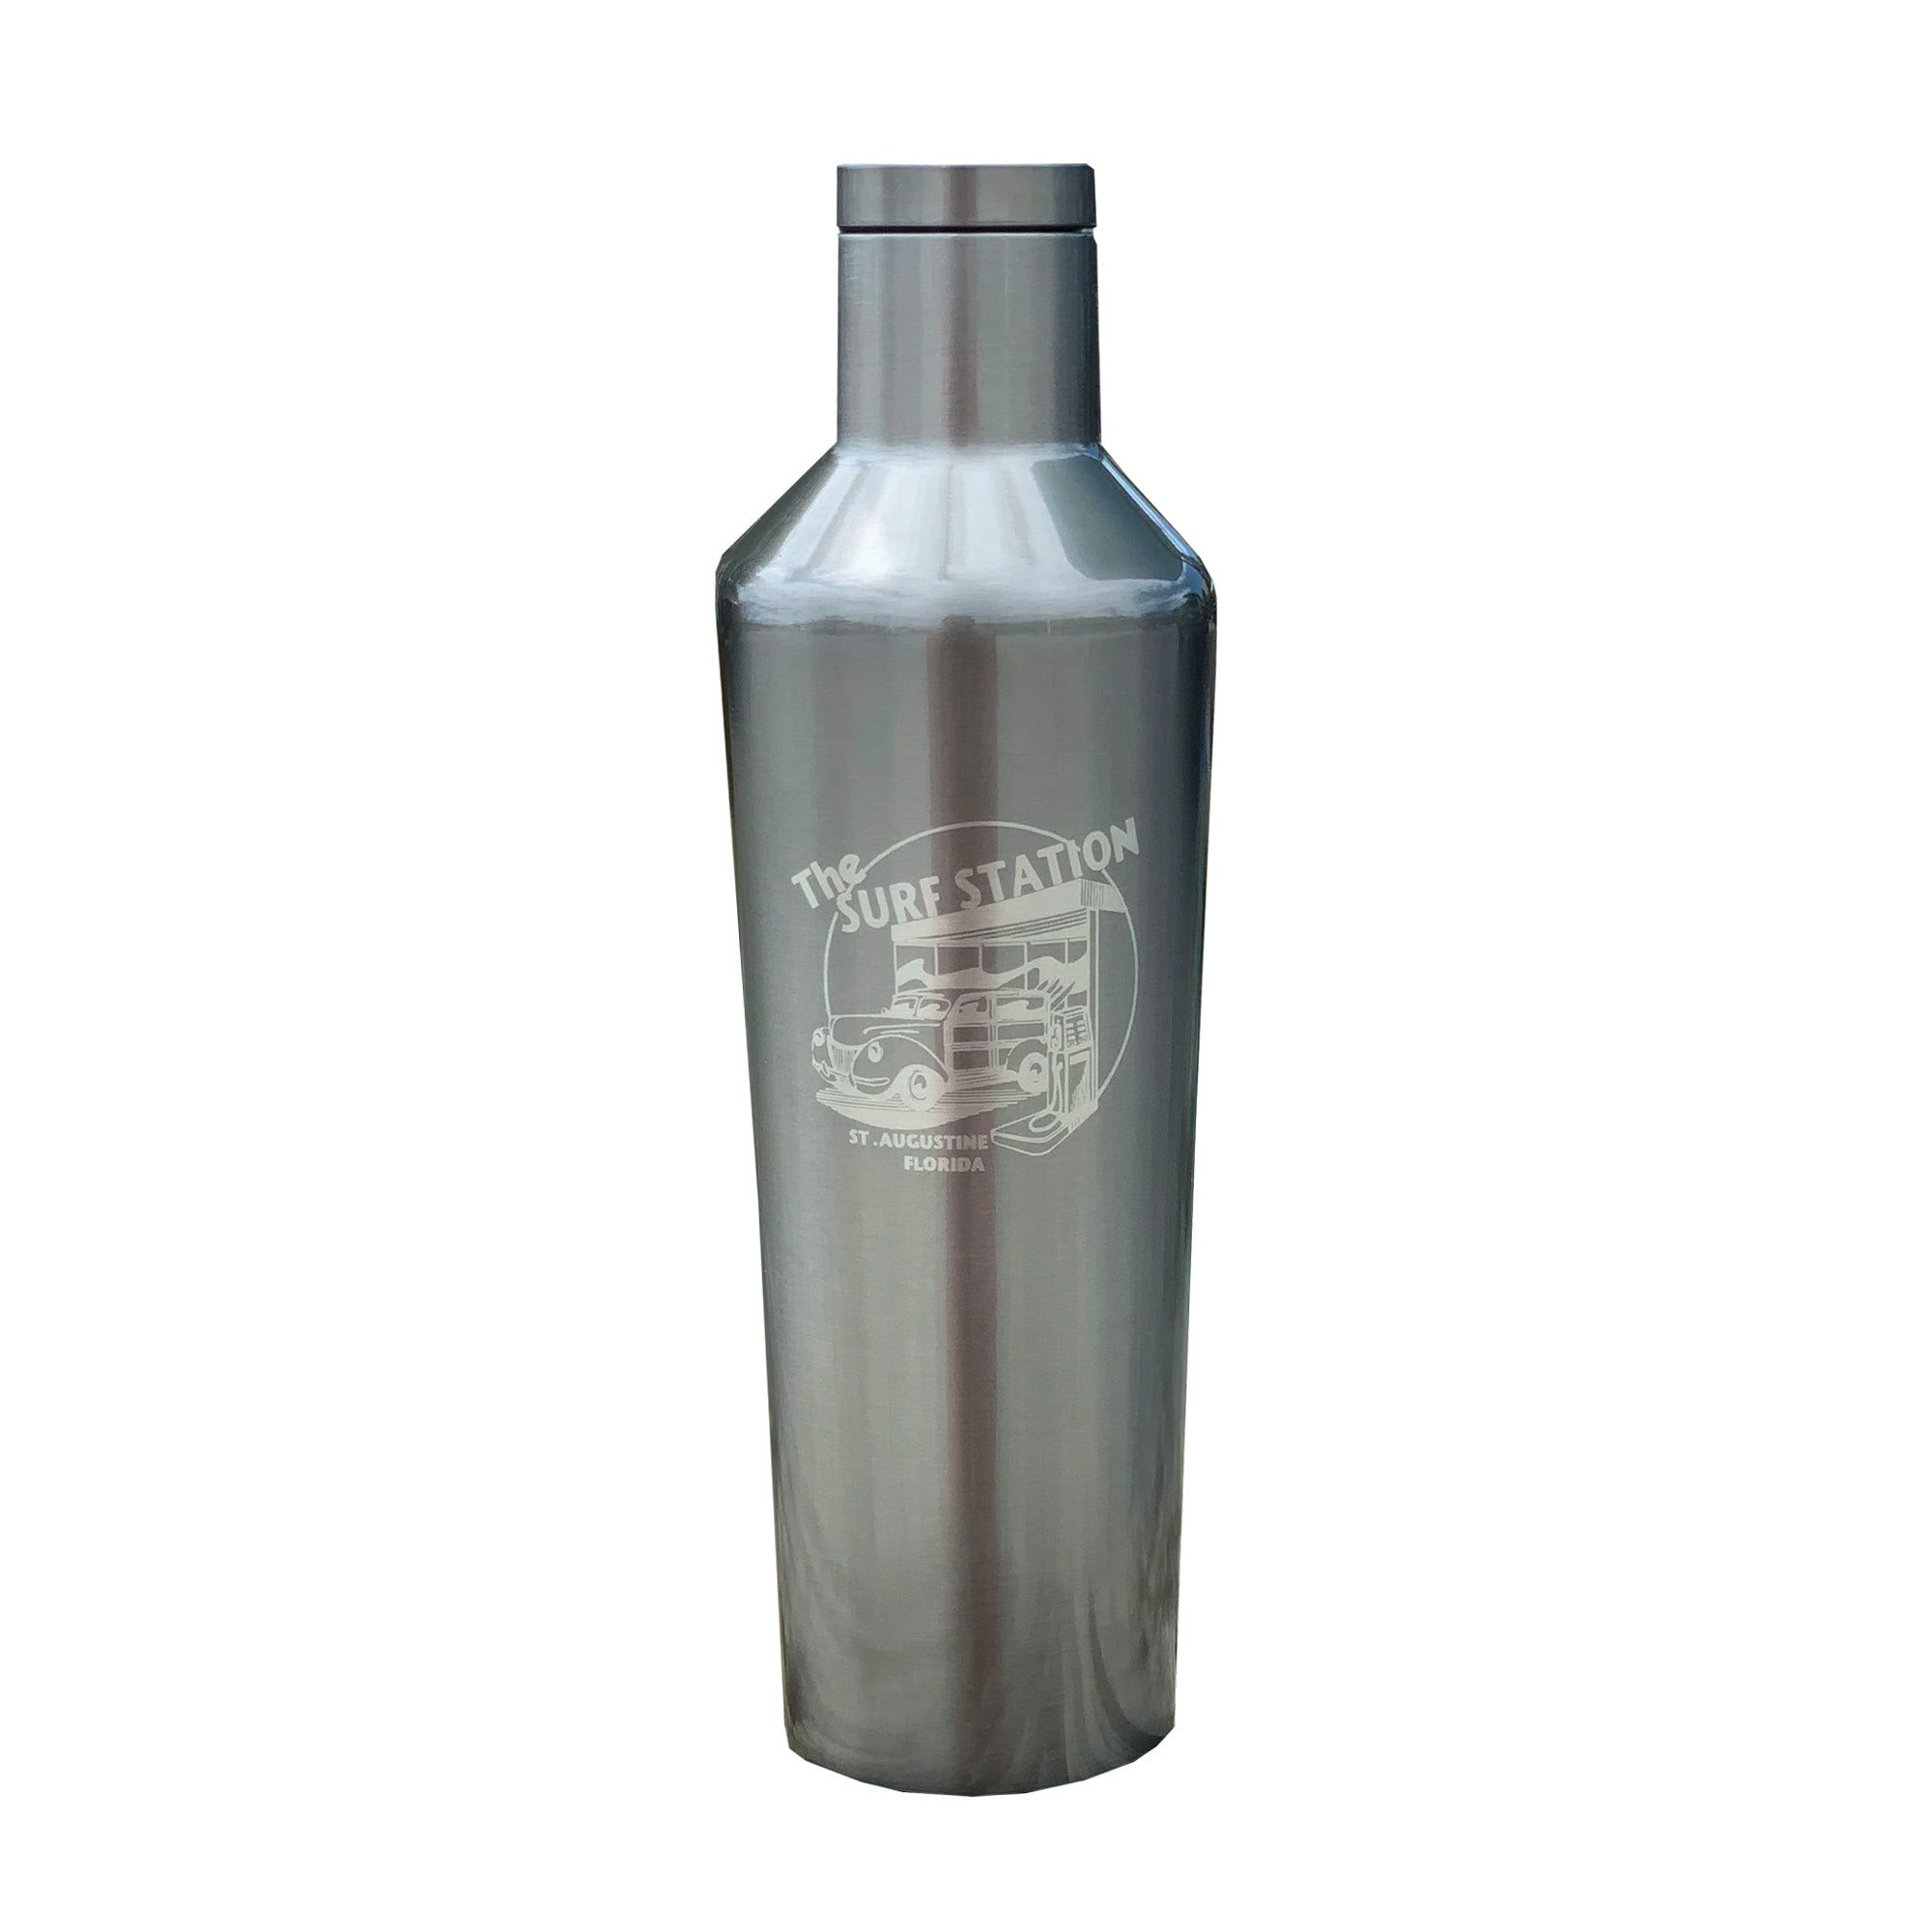 Surf Station 16oz Canteen - Gunmetal